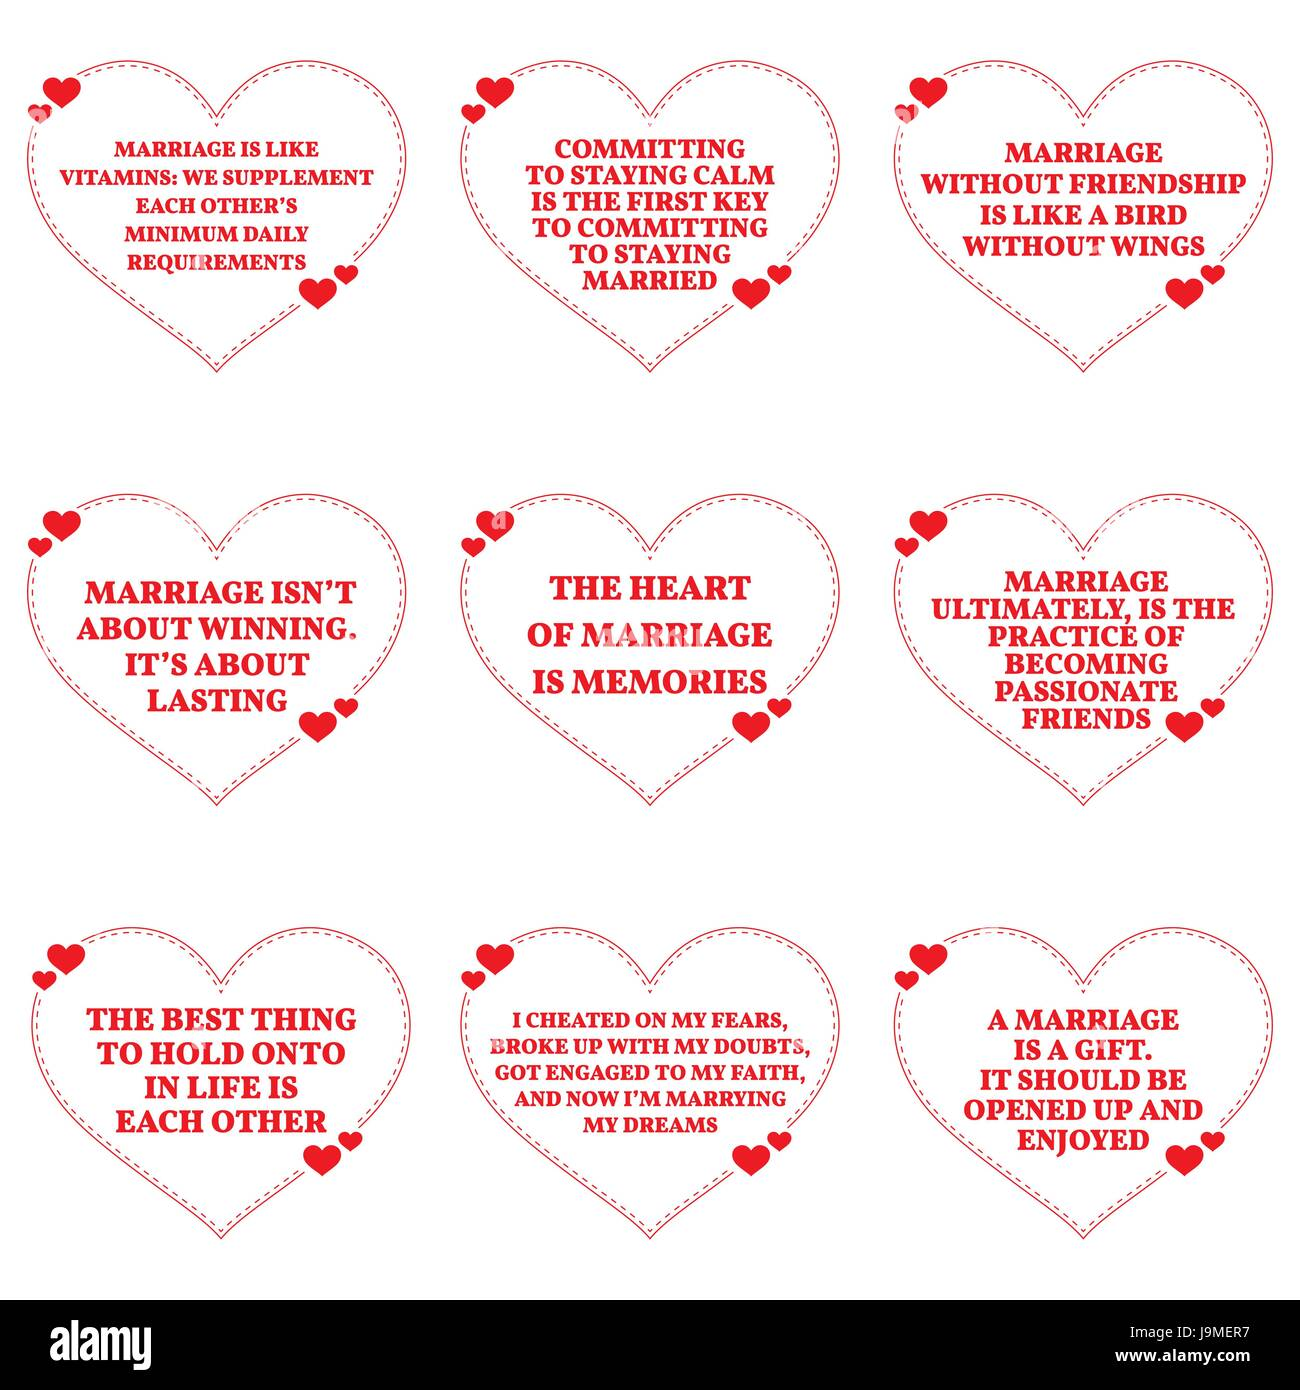 Quotes About Lasting Friendship Set Of Quotes About Love And Marriage Over White Background